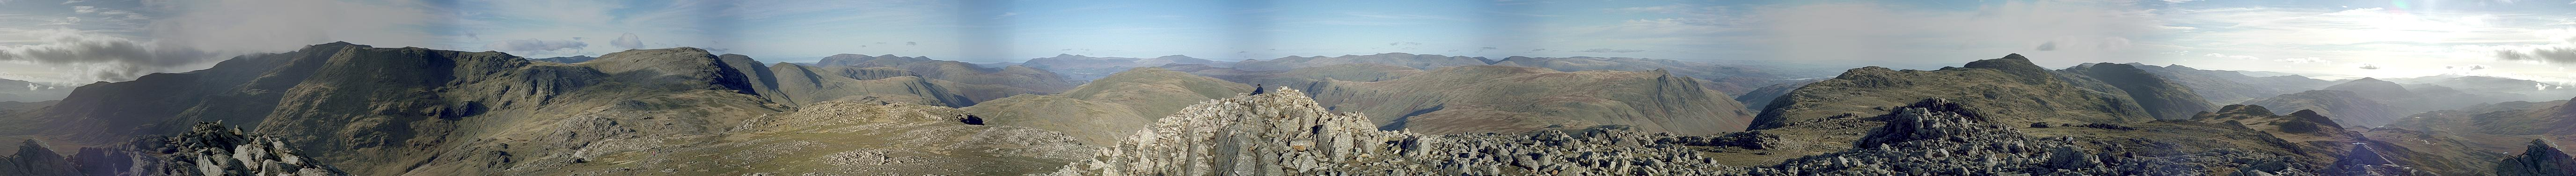 Esk Pike - Complete Panorama